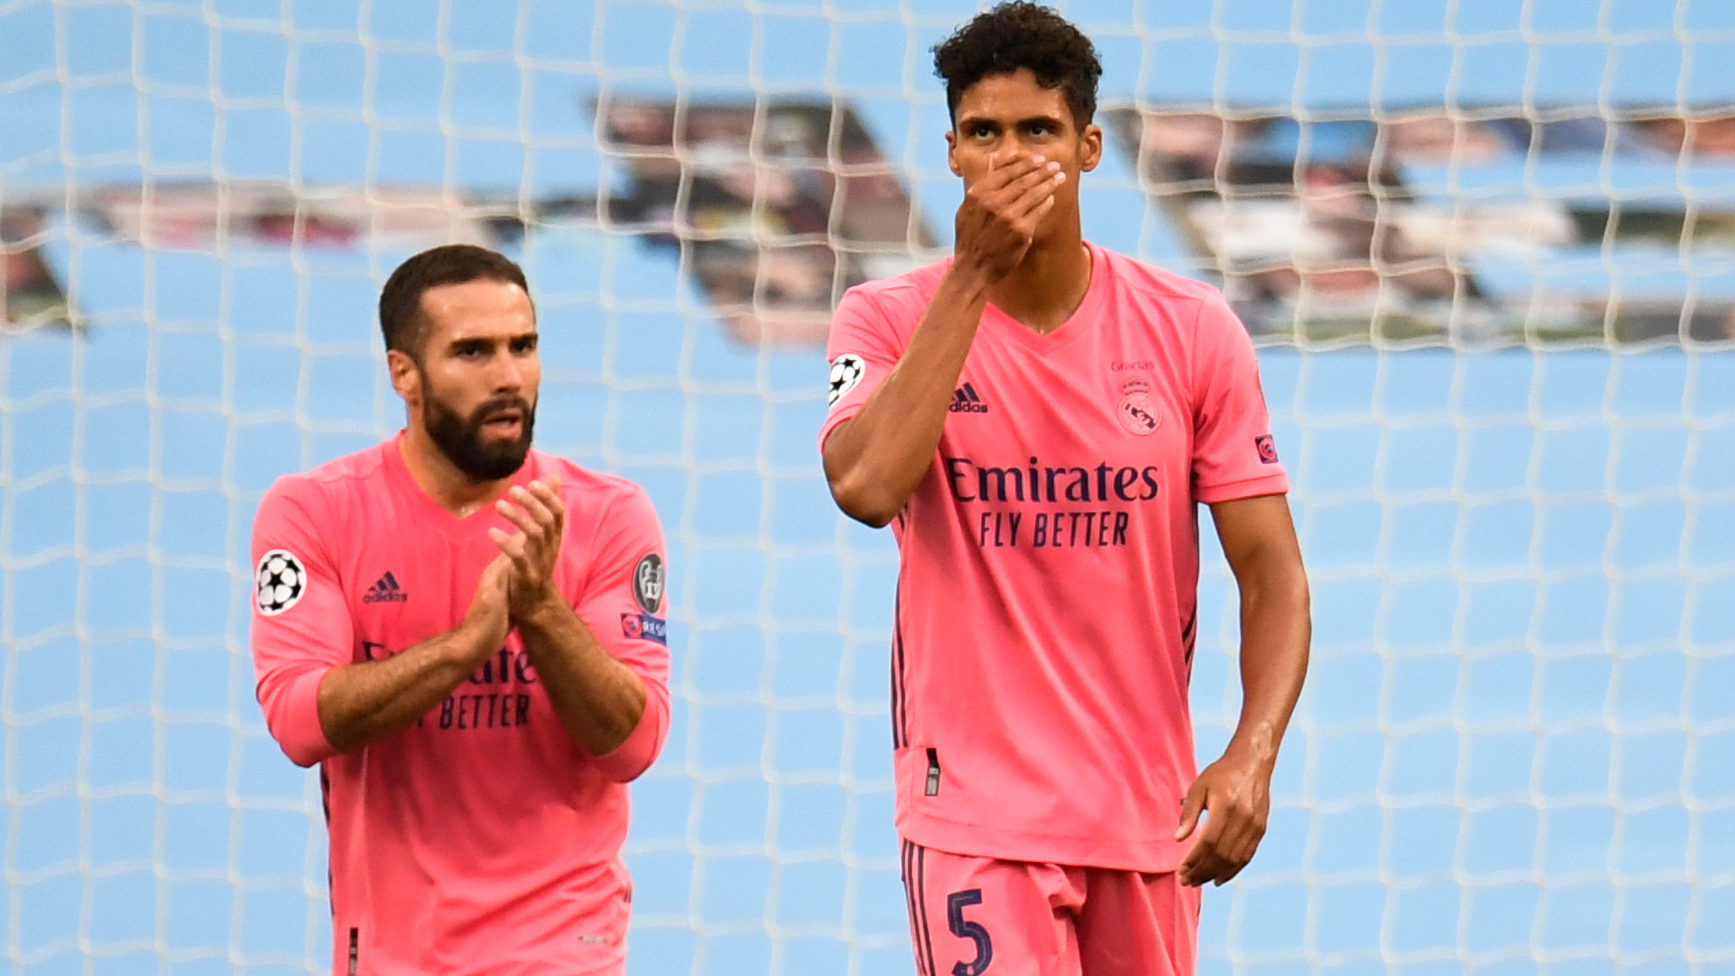 This is my defeat' - Varane takes responsibility for Madrid Champions League exit after Man City horror show | Goal.com